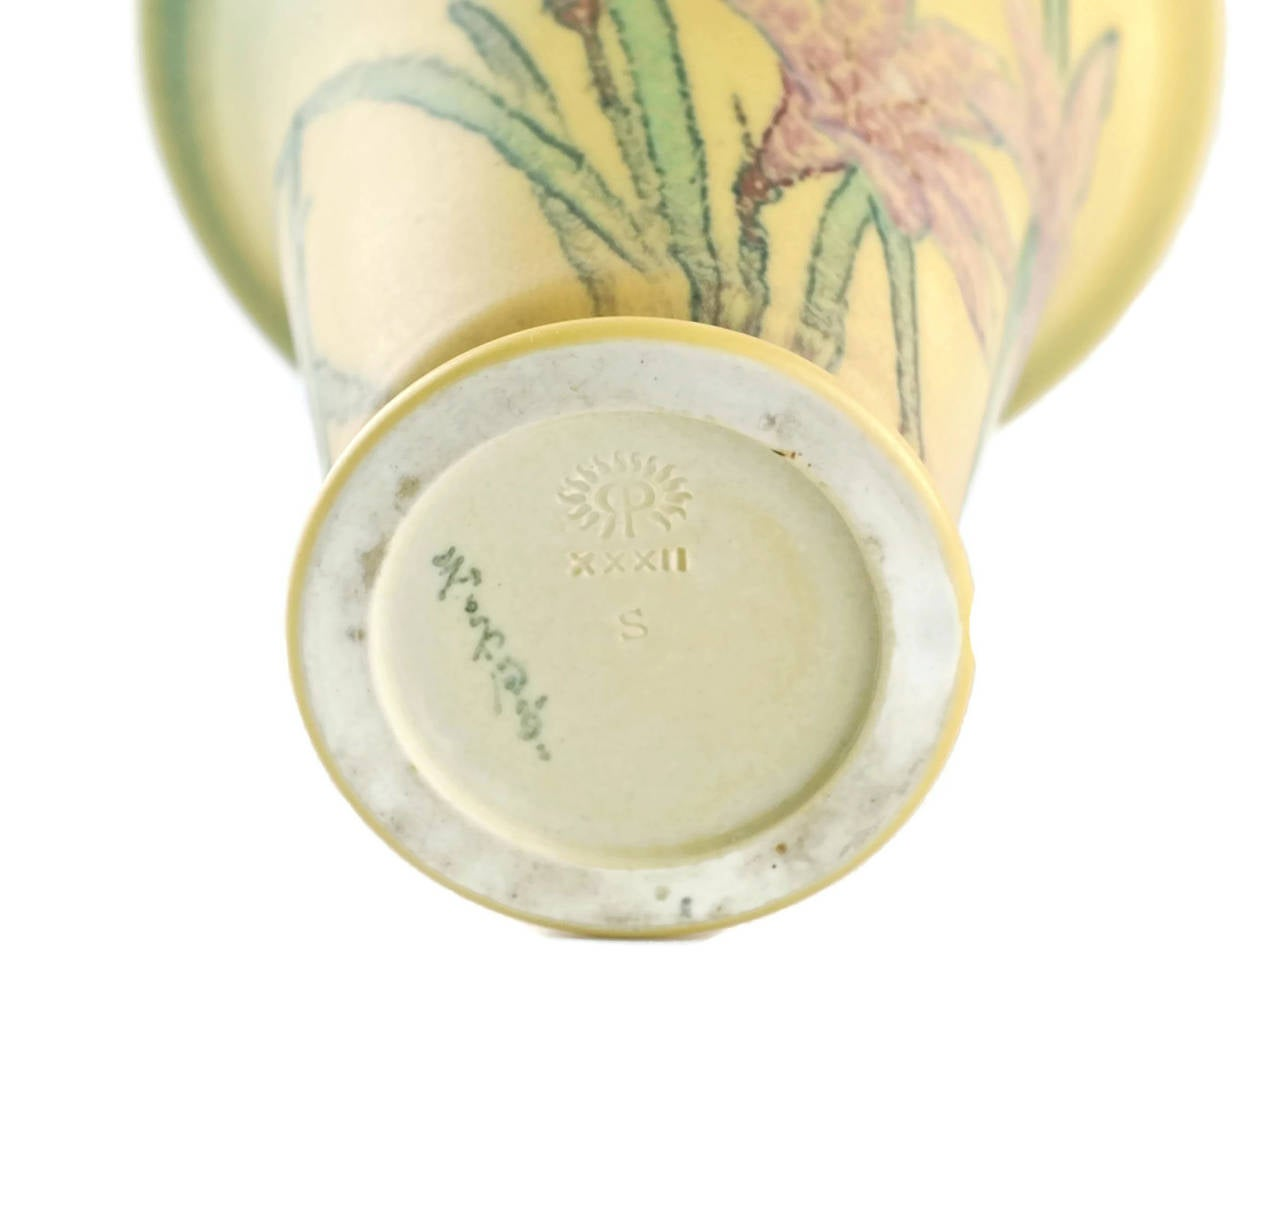 Hand-Painted Kataro Shirayamadani Signed Rookwood Pottery Vase with Floral Motif For Sale